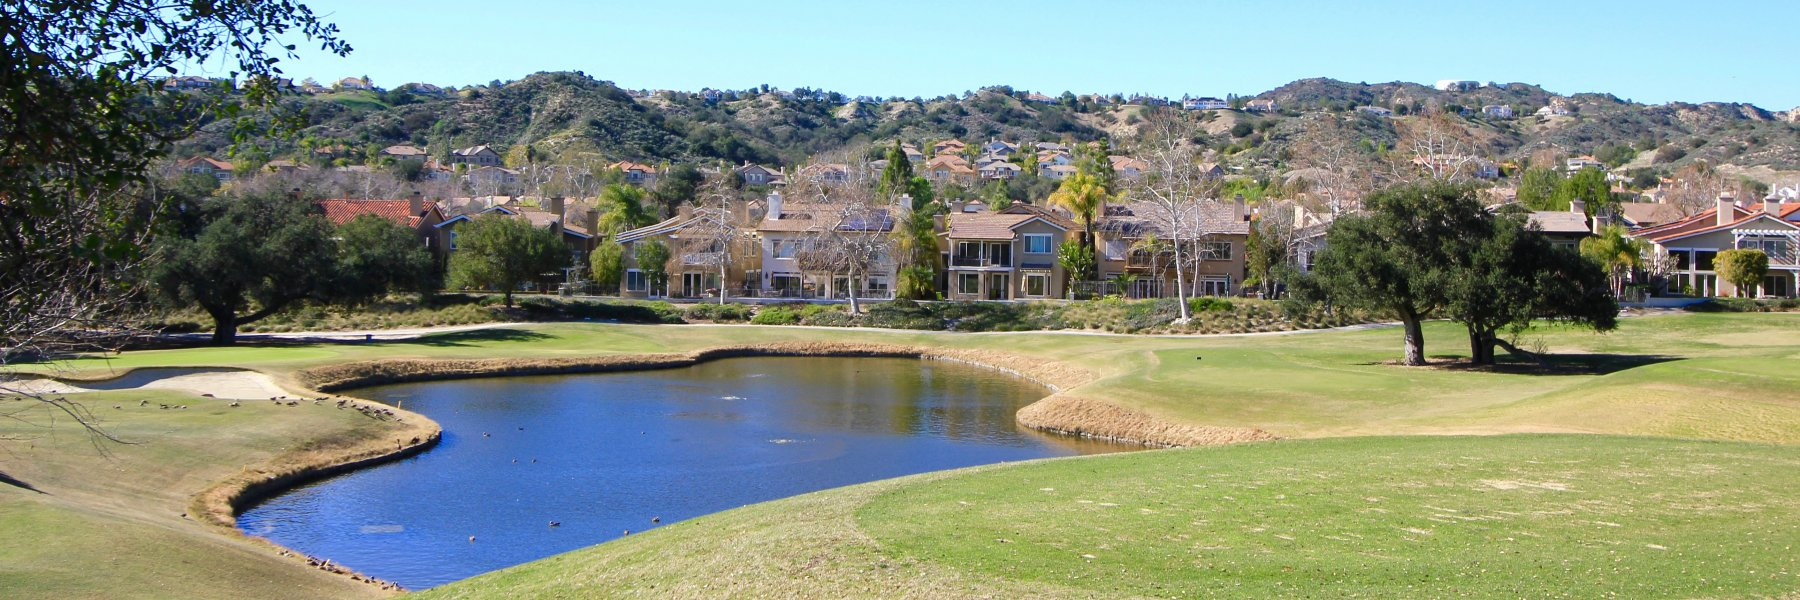 Oak Knoll is a community of homes in Coto de Caza, California